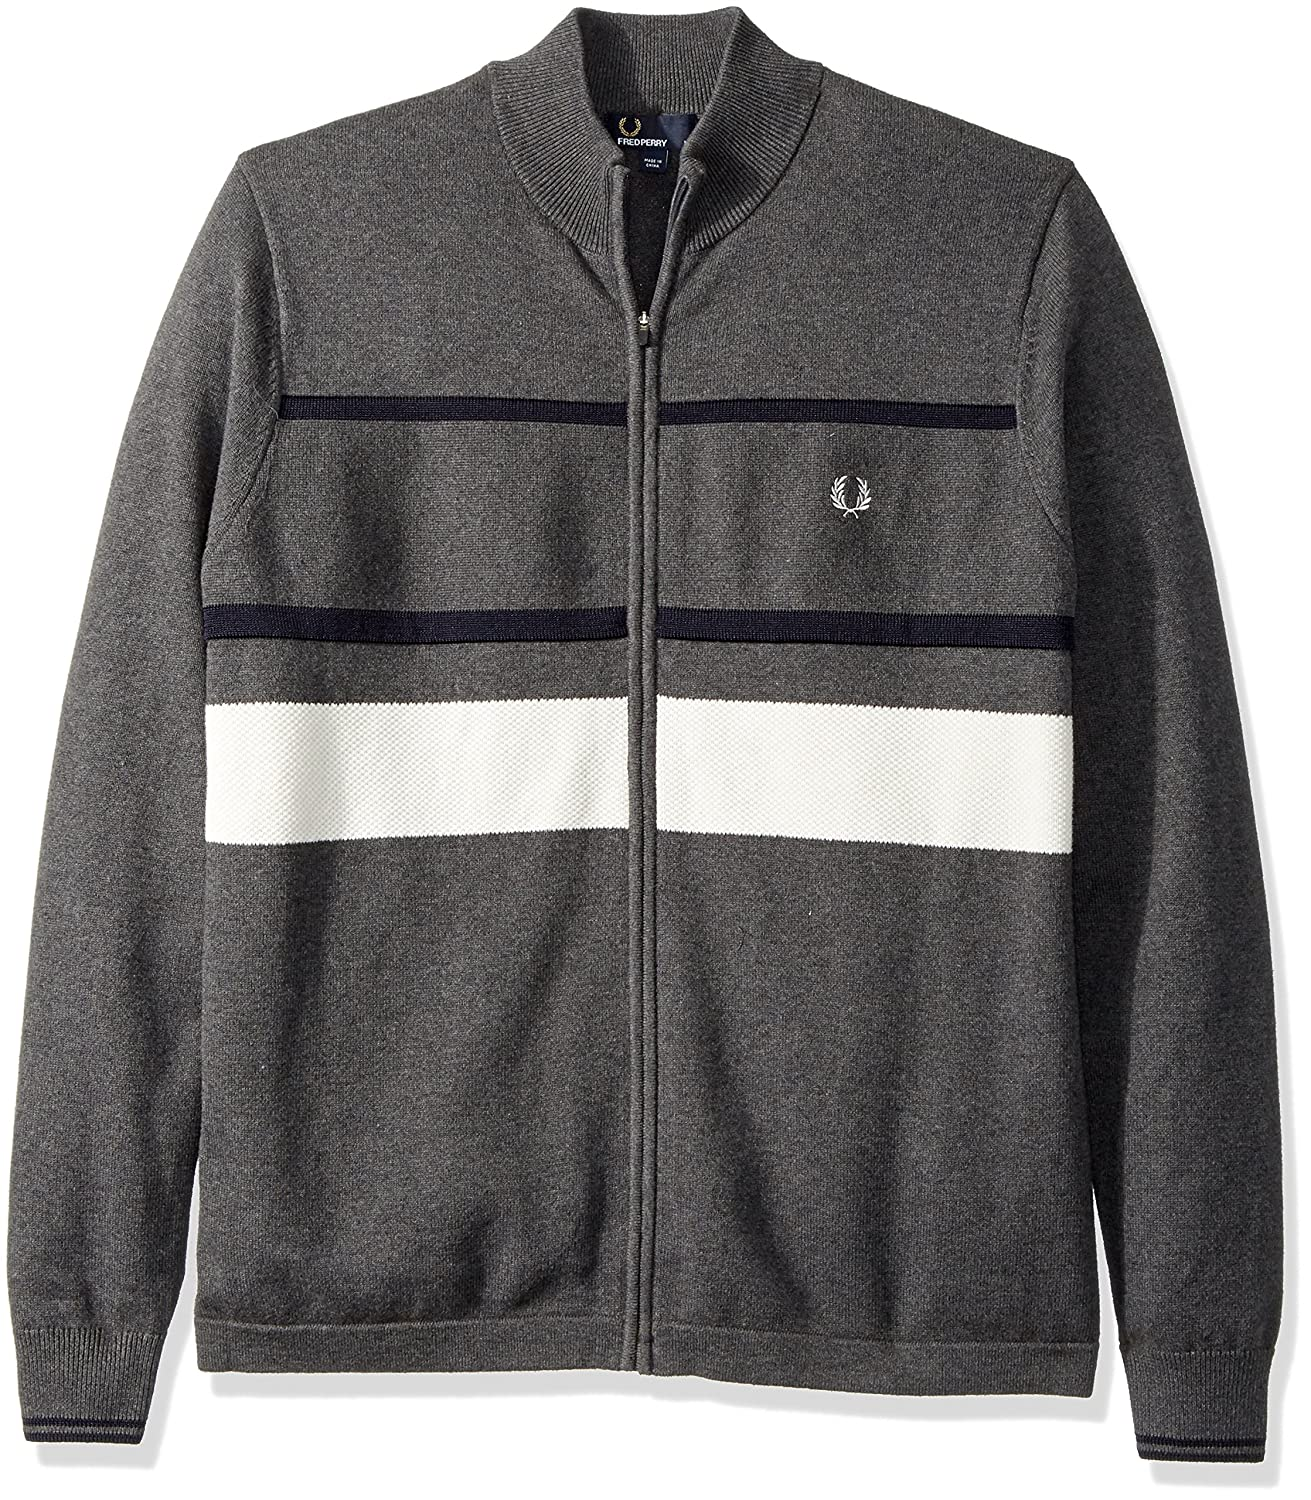 Fred Perry OUTERWEAR メンズ B0713XW3YH Large|Graphite Marl Graphite Marl Large